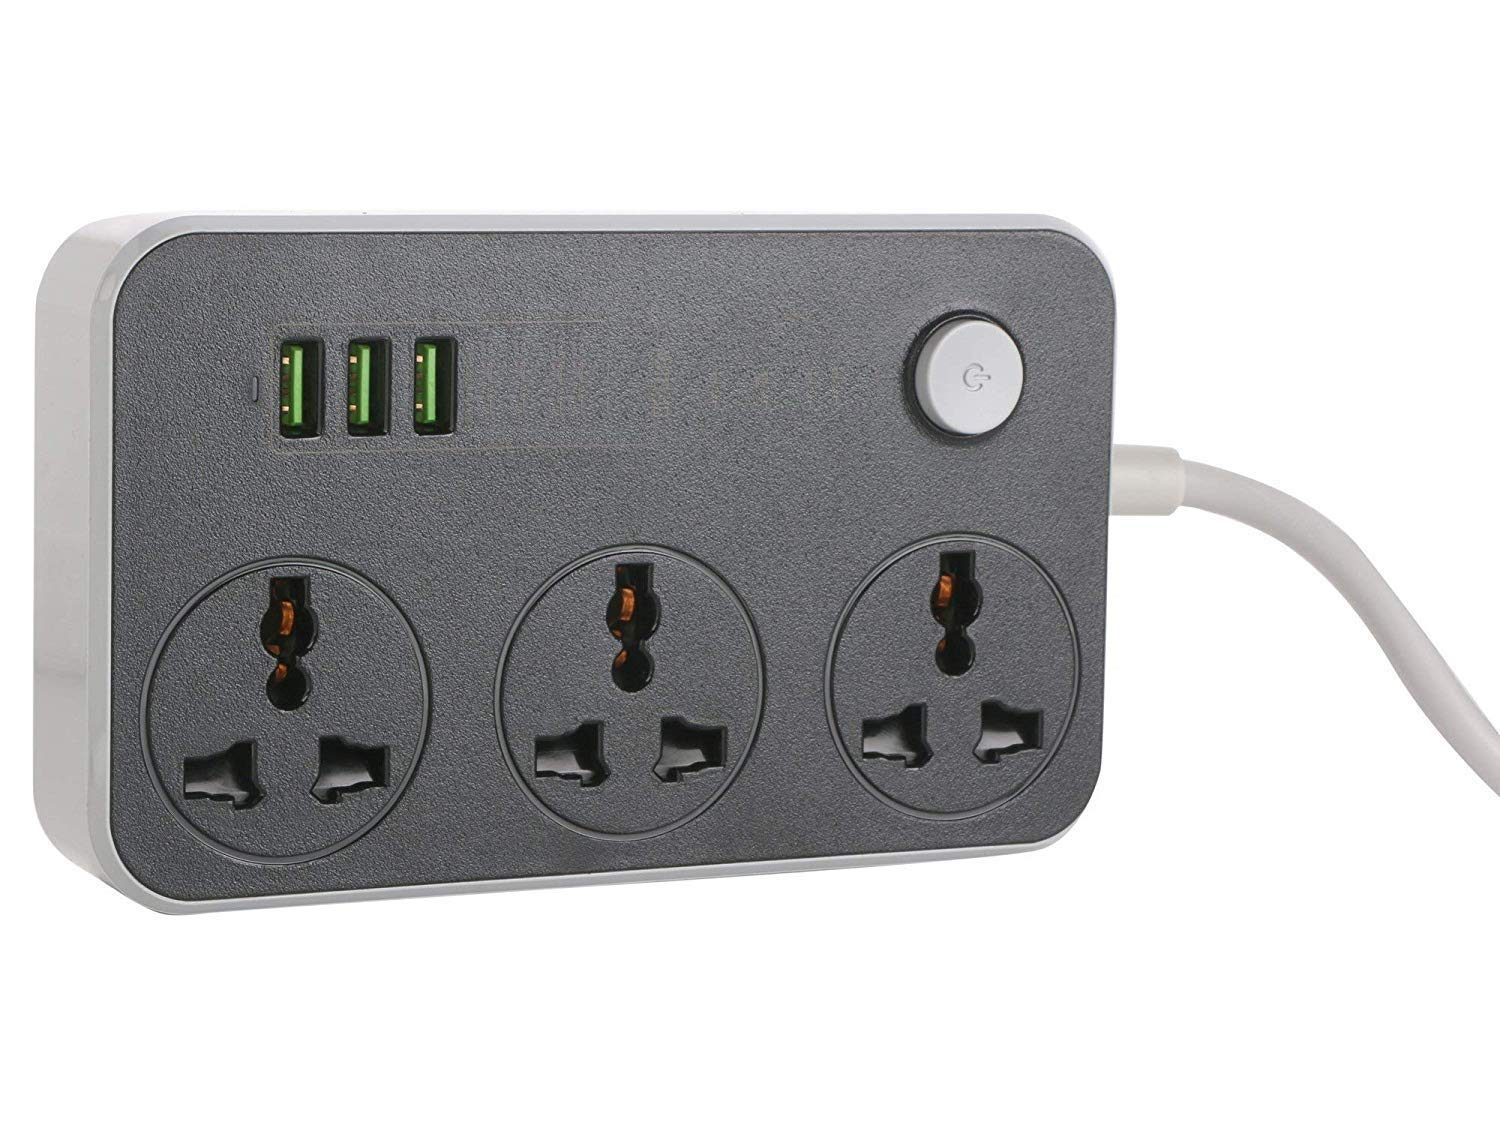 Haau Extension Board with USB Ports Long Cord Universal Socket 3 Outlets Surge Protector 3 Quick USB Charging Ports